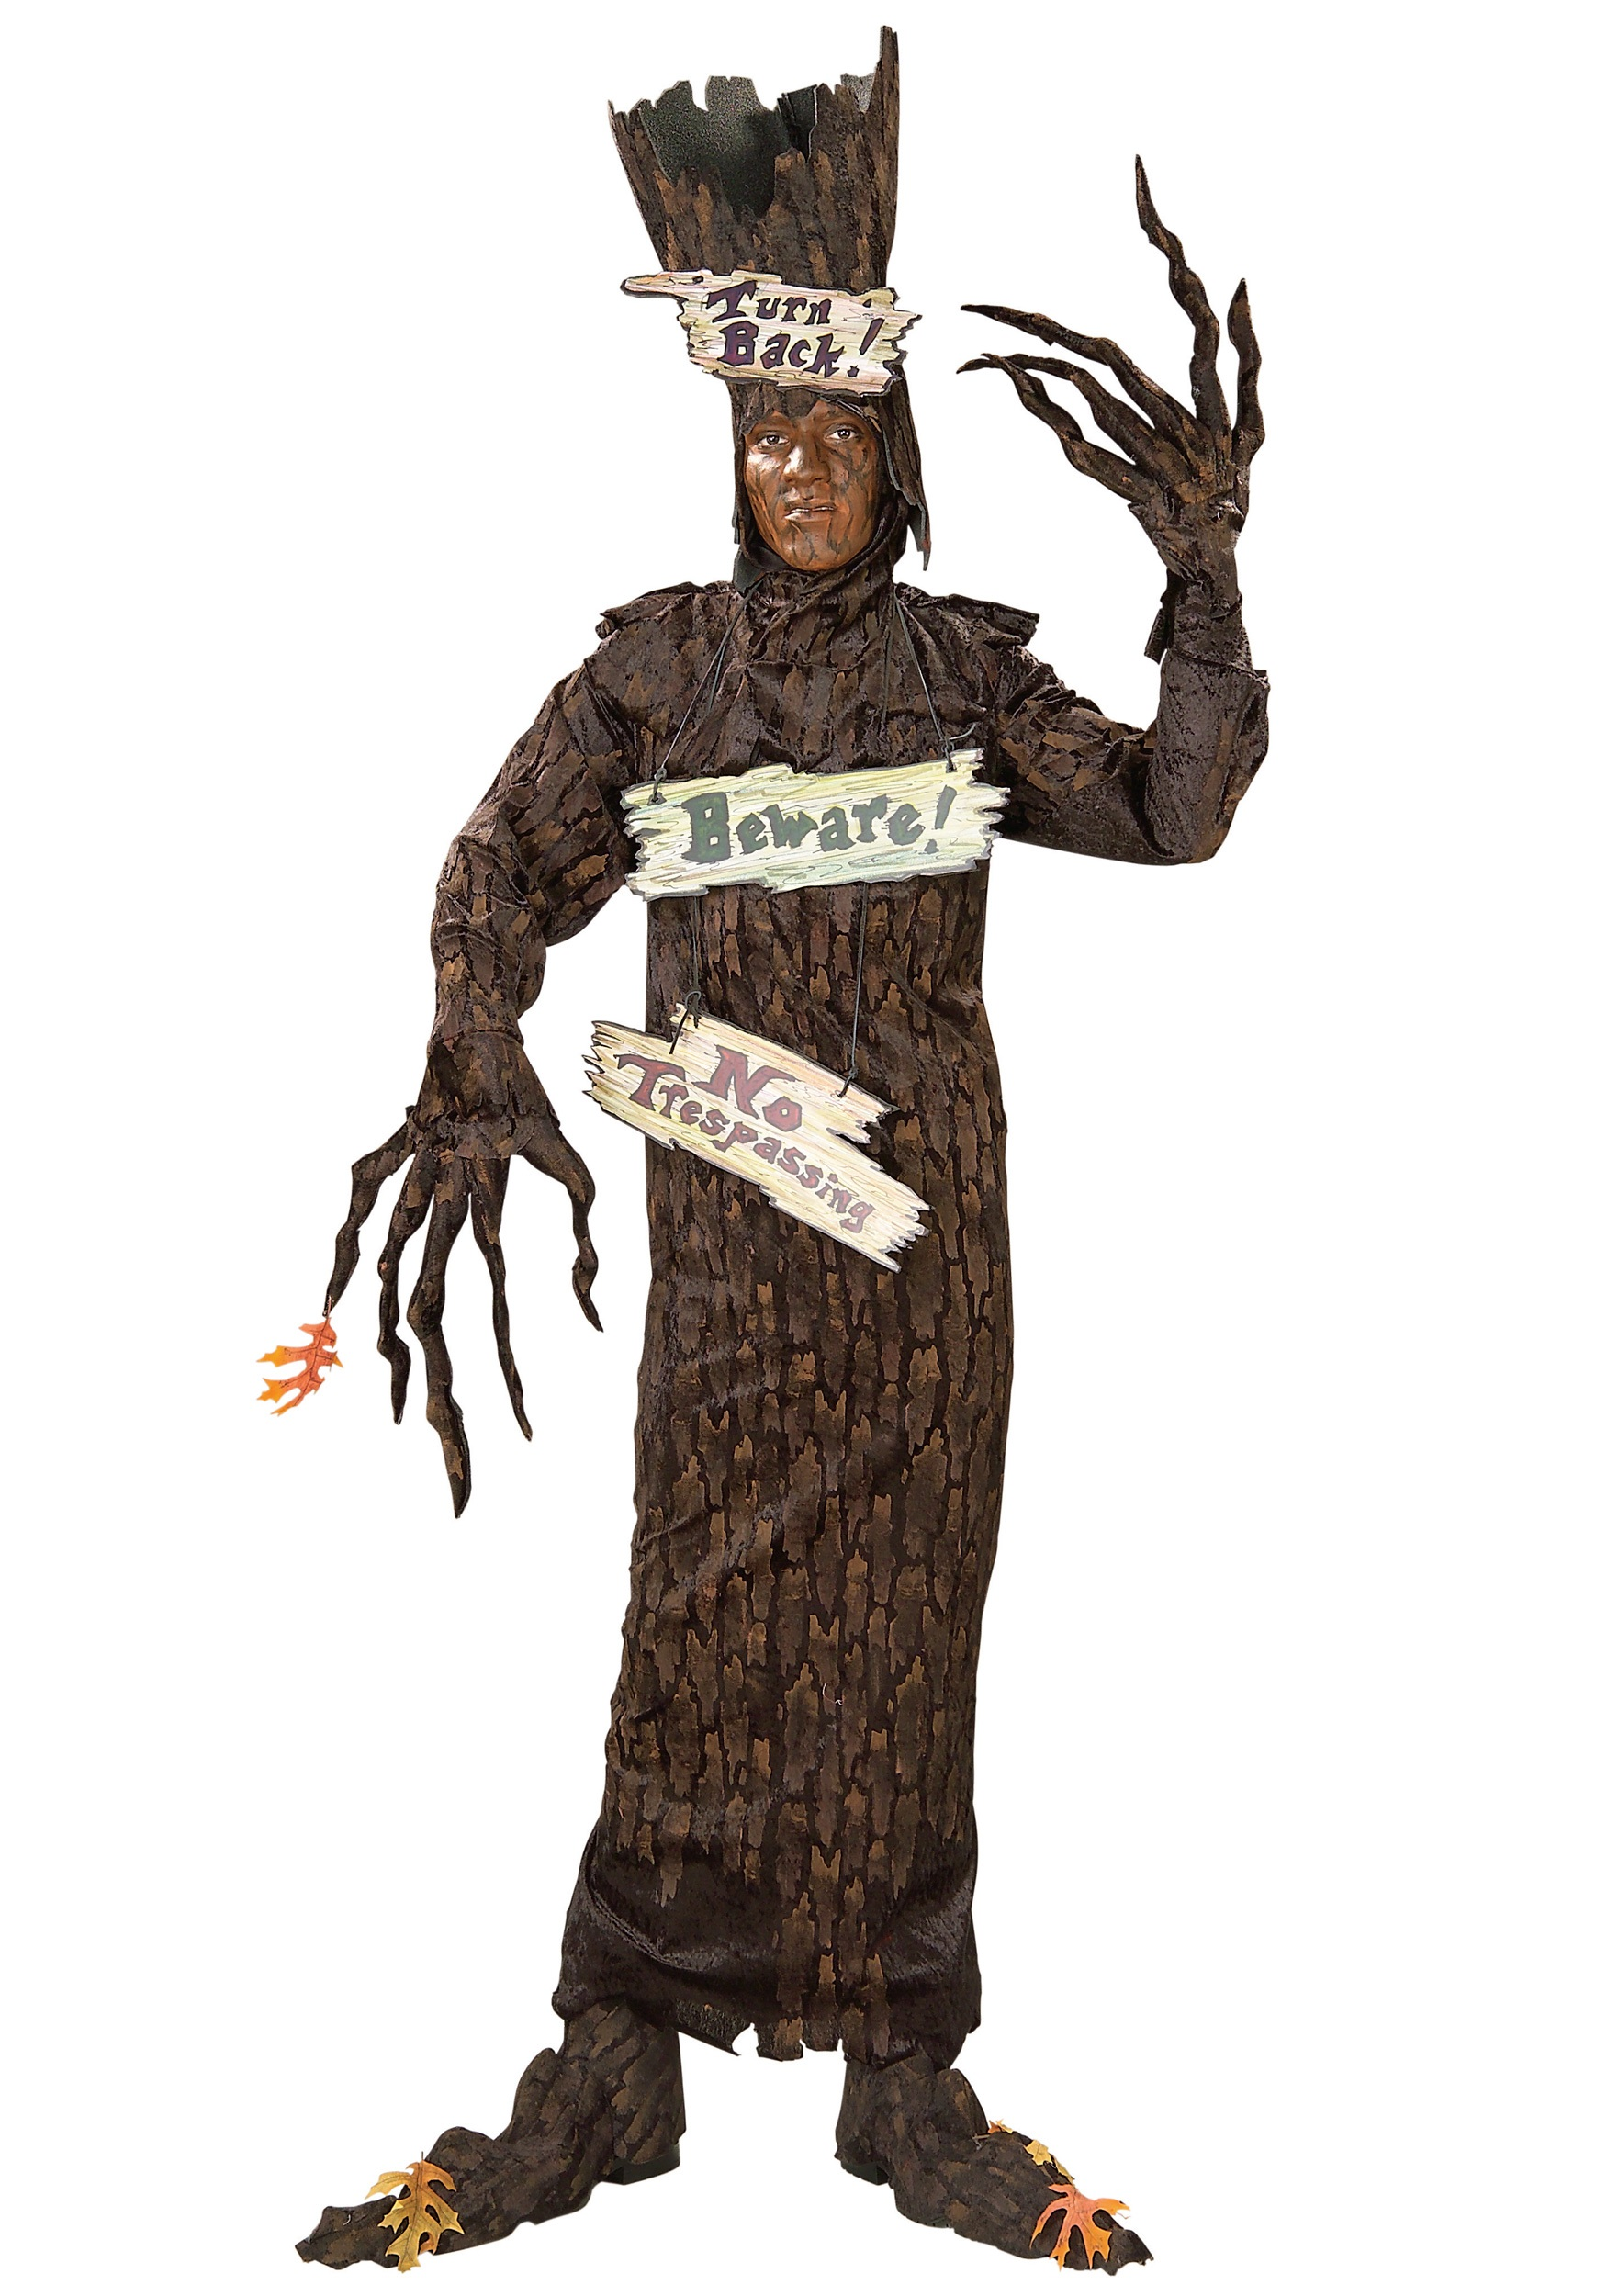 Wizard of Oz Costumes - Flying Monkey and Scary Tree costumes